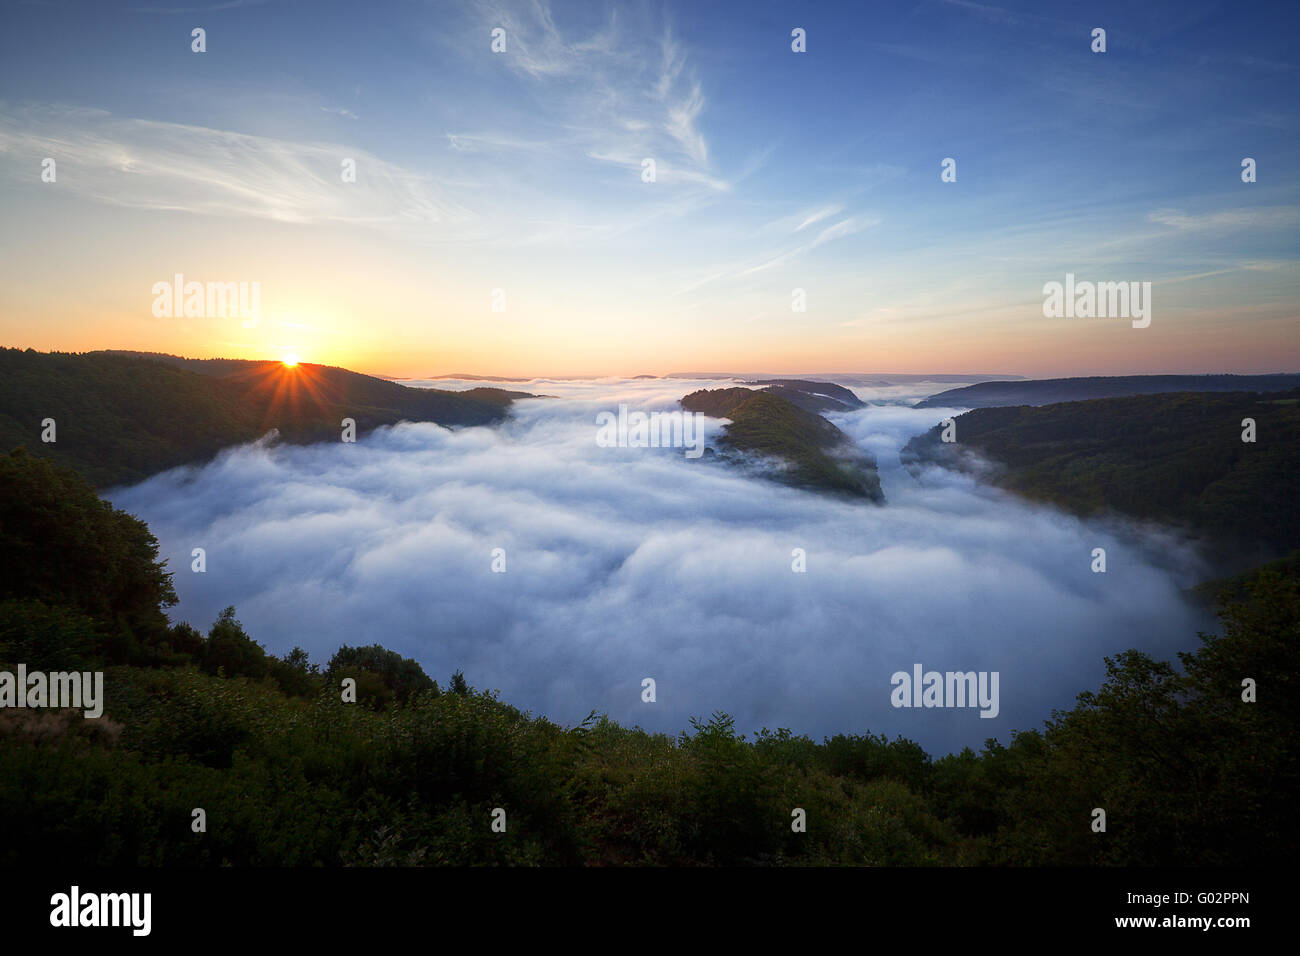 sunrise over the Saar loop, near Mettlach, Germany - Stock Image